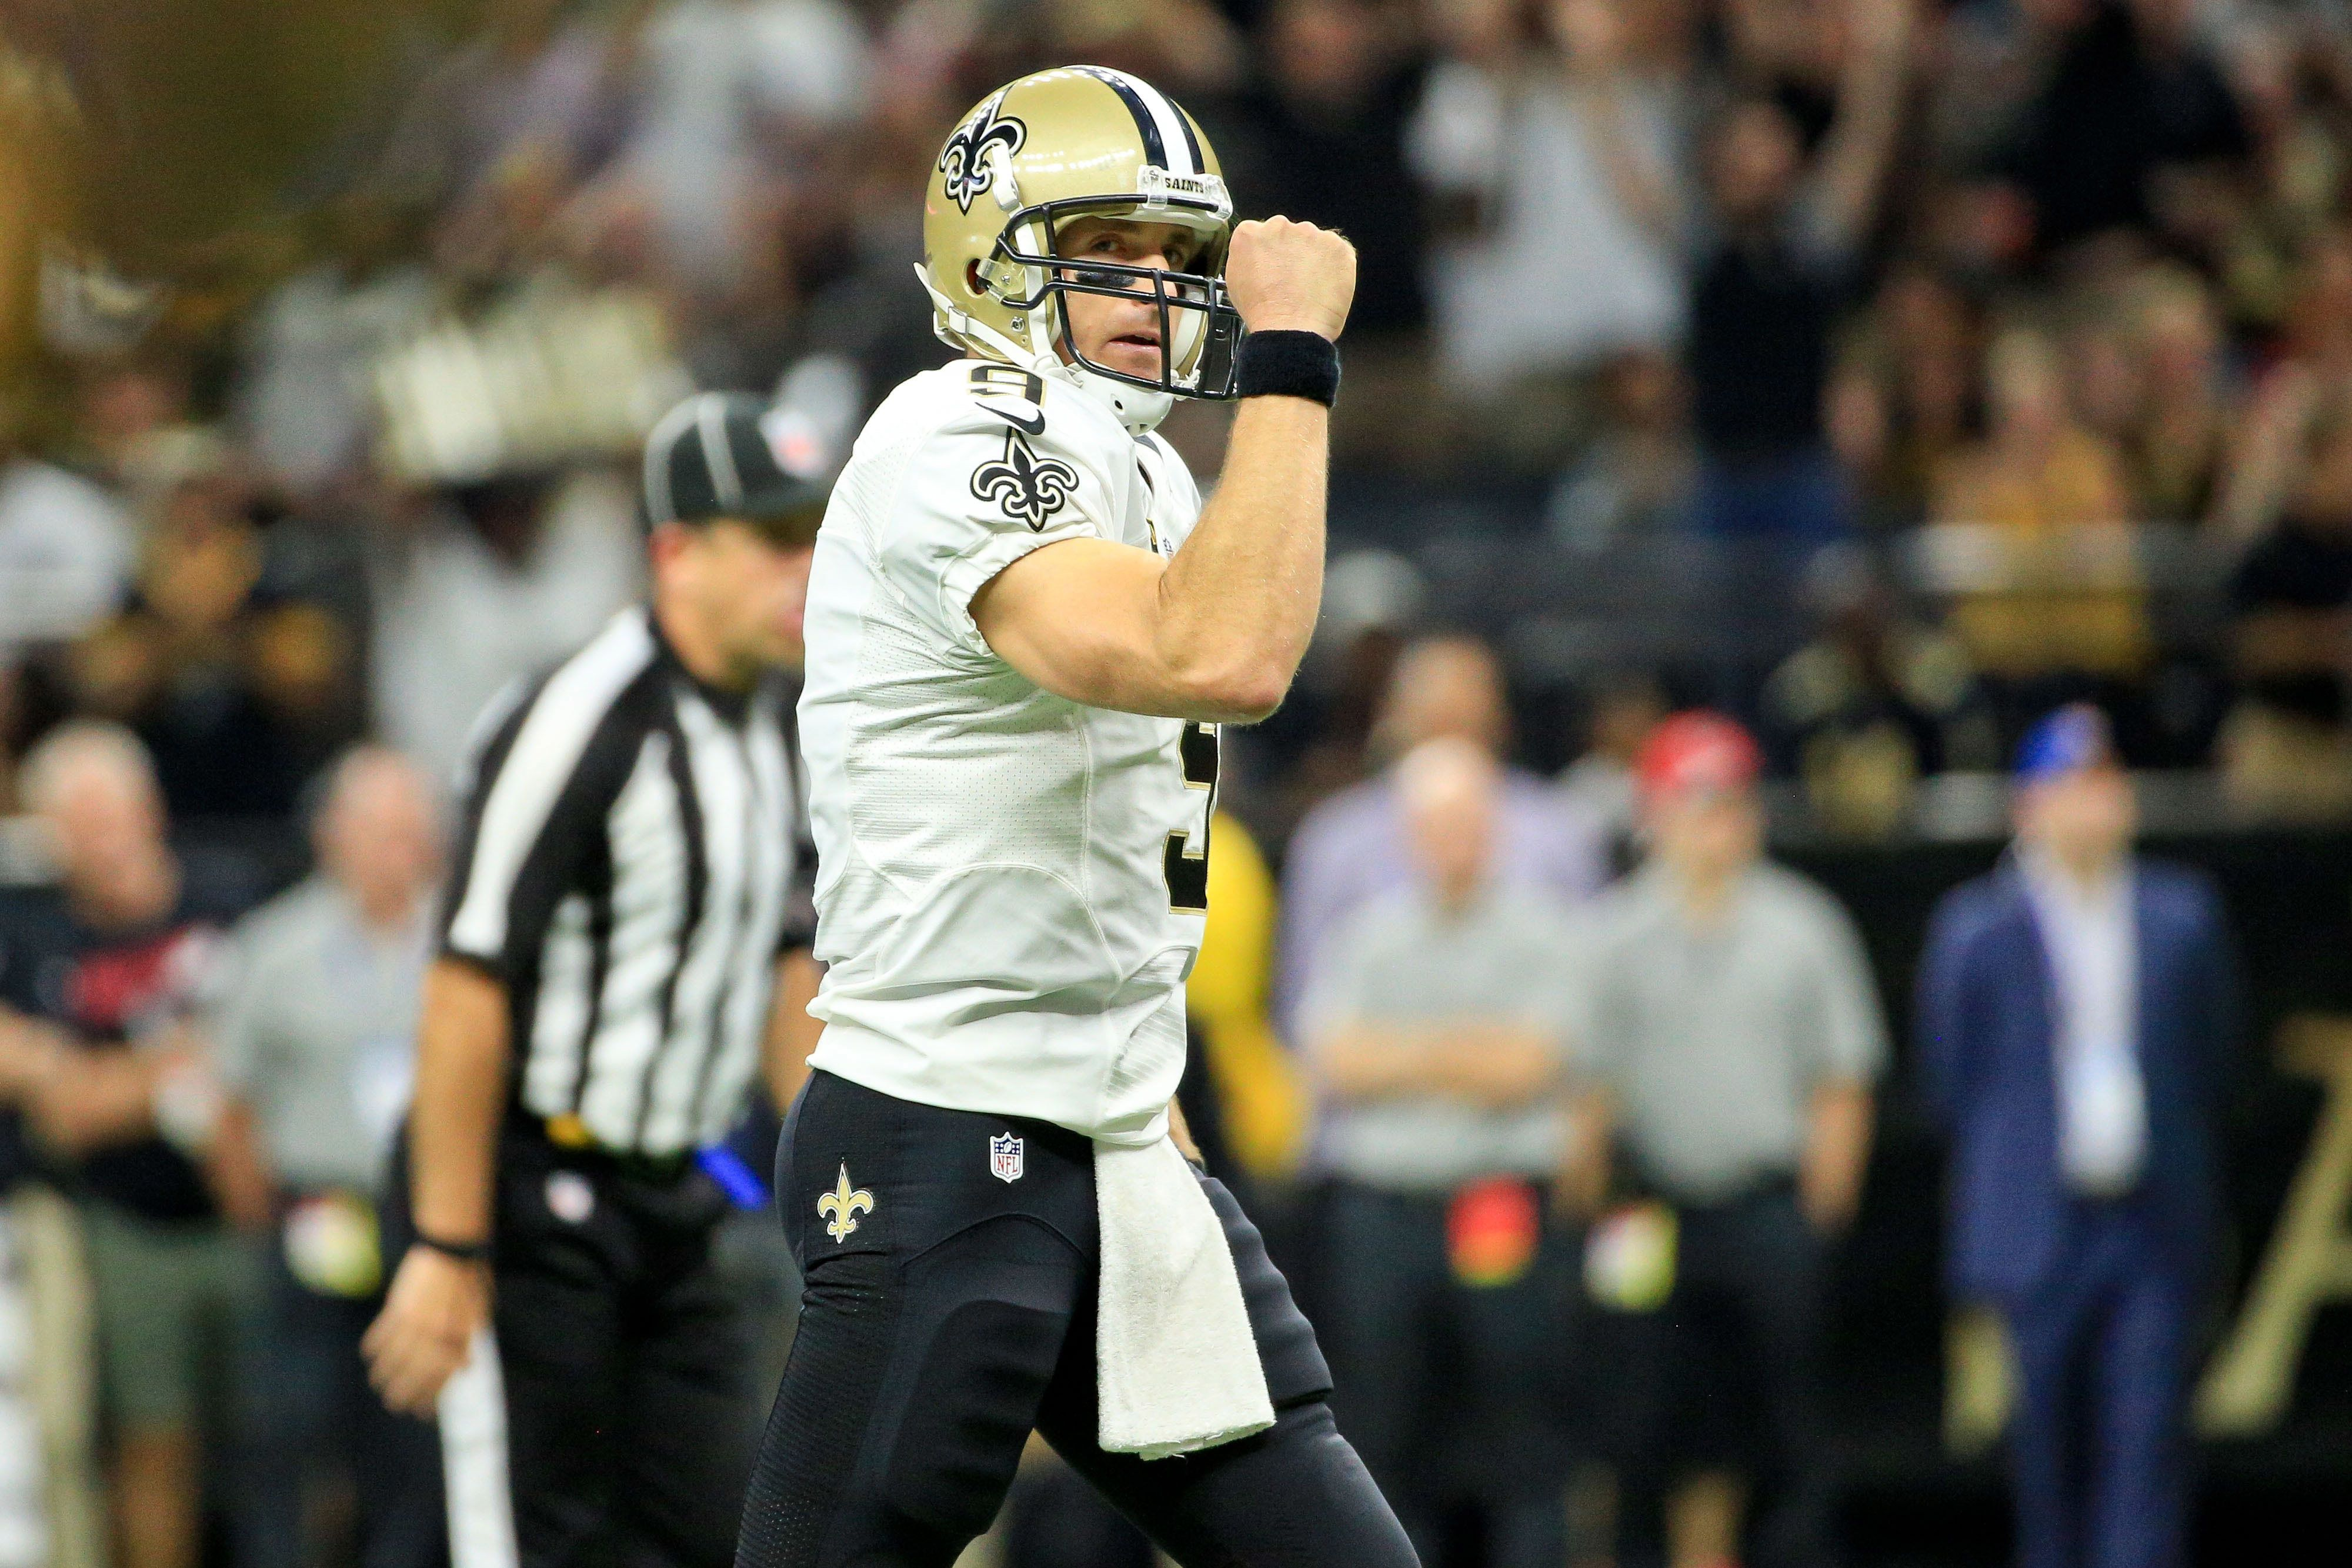 After the NFL's usual long day, Drew Brees said he heads home to see his young children before they go to bed.